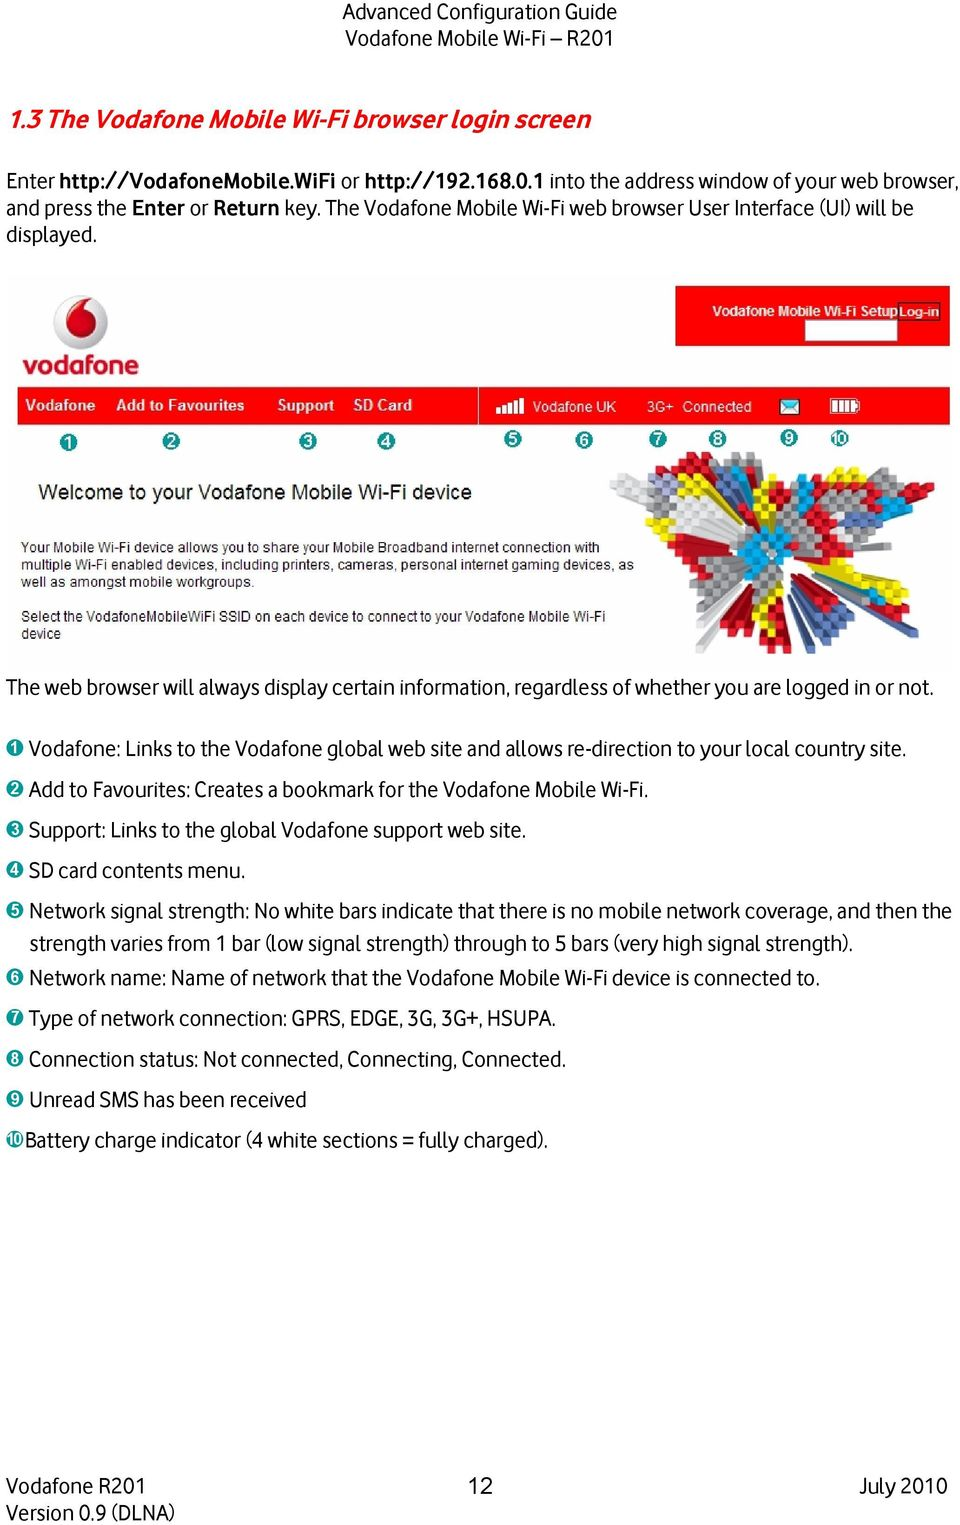 ➊ Vodafone: Links to the Vodafone global web site and allows re-direction to your local country site. ➋ Add to Favourites: Creates a bookmark for the Vodafone Mobile Wi-Fi.